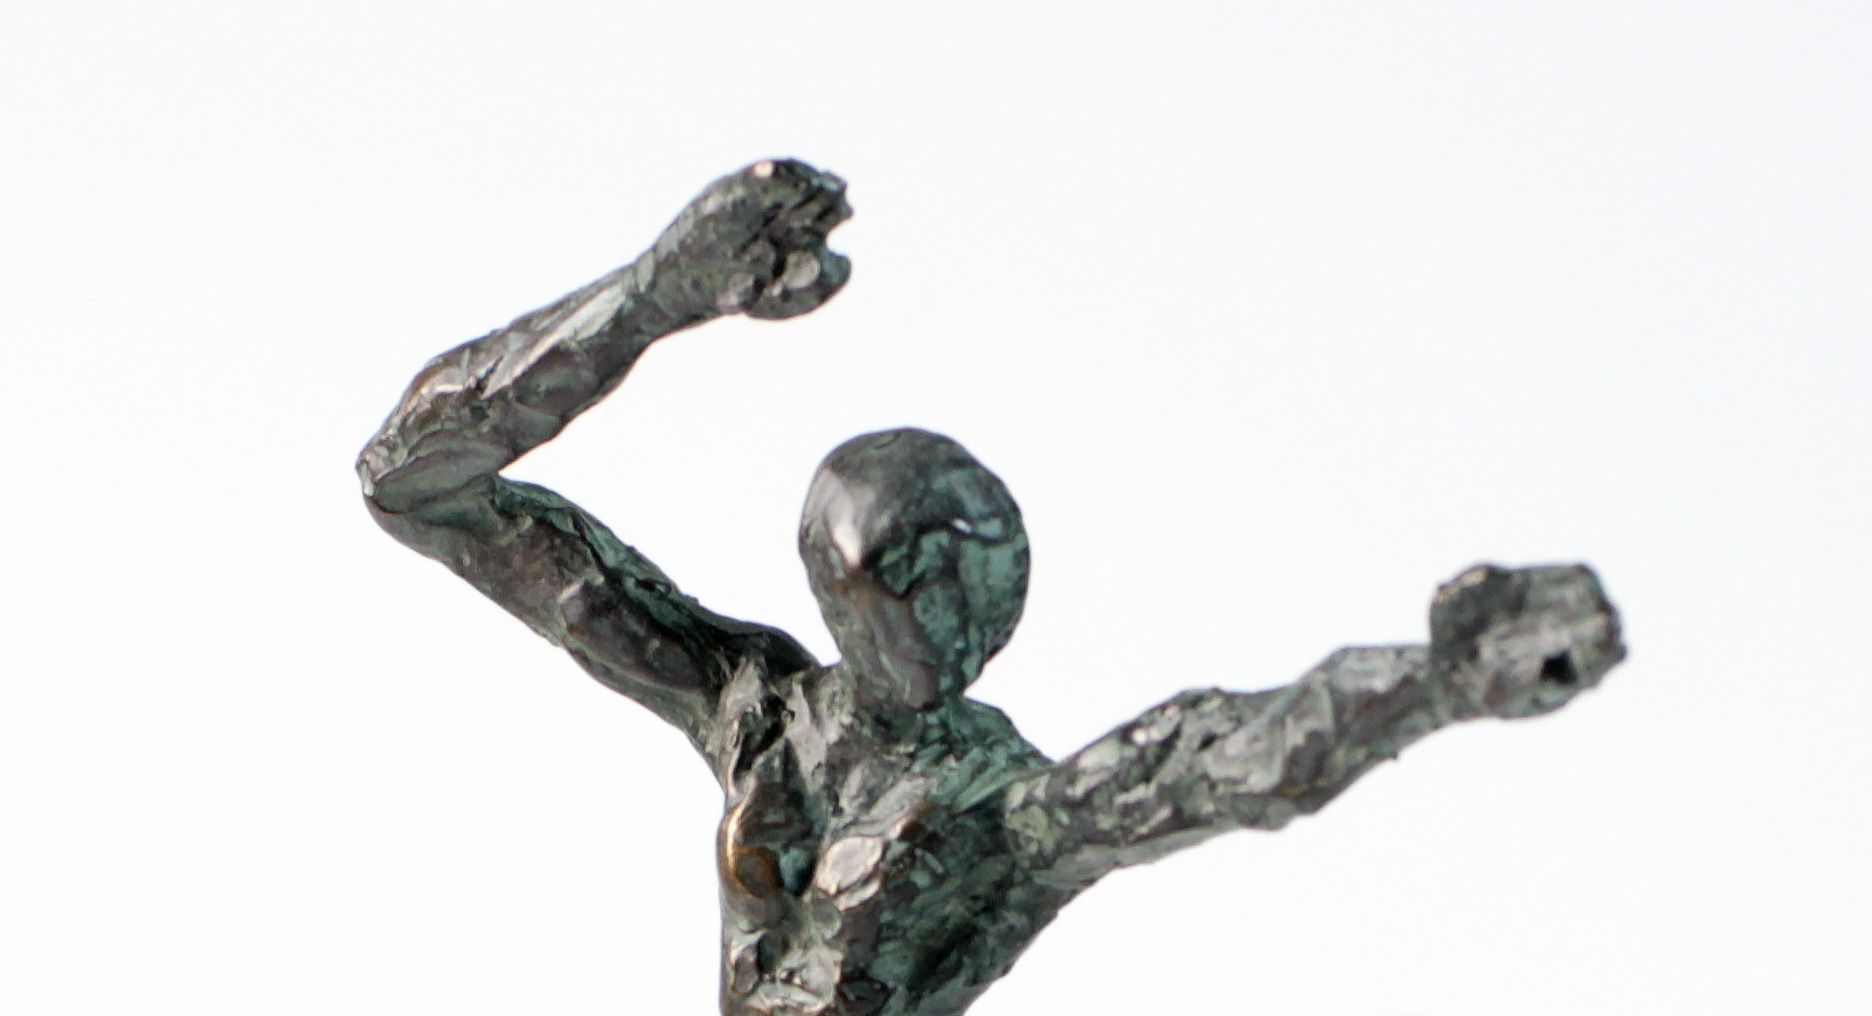 Petit Danseur Karateka II,Yann Guillon,Sculpture contemporaine, detail 4